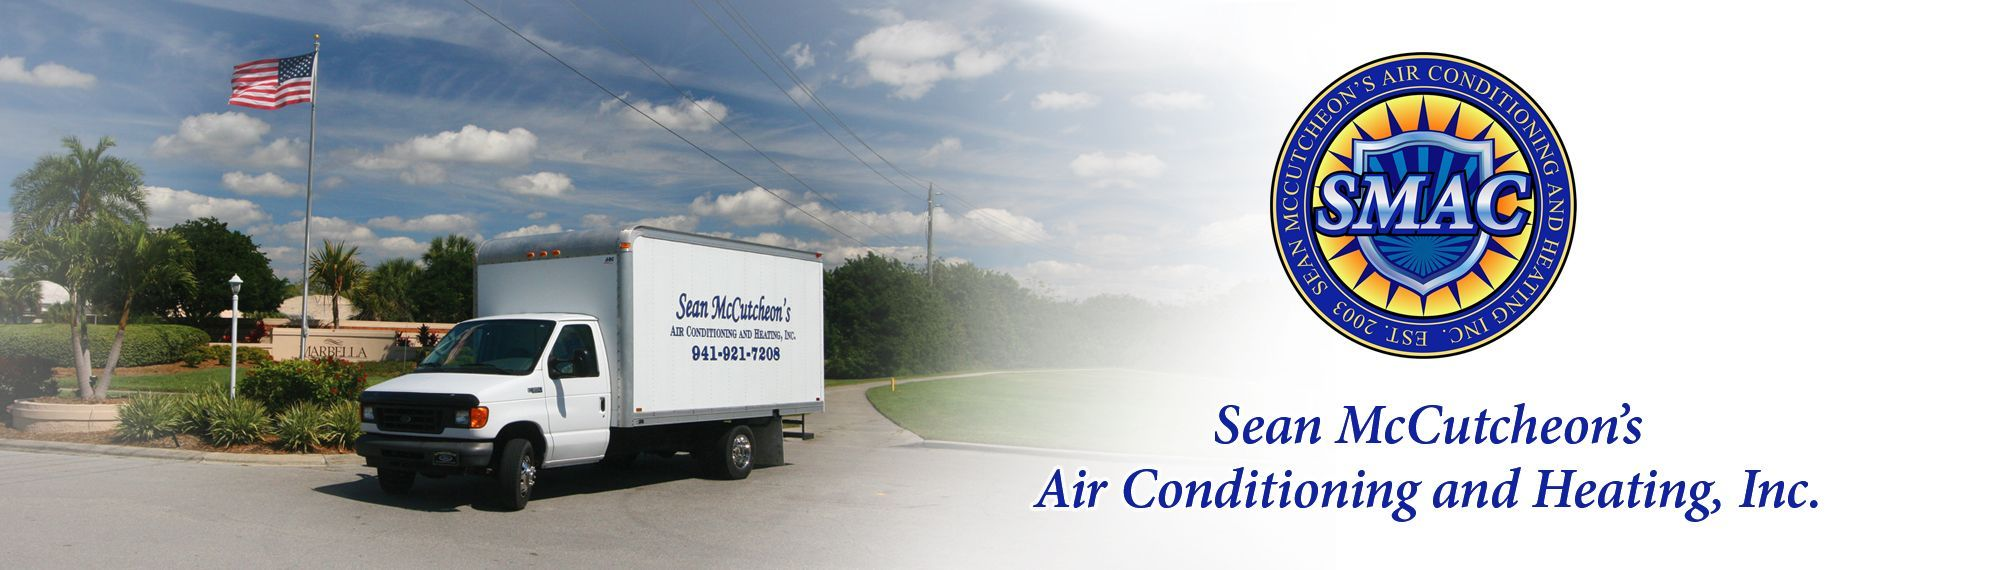 Sean McCutcheon's Air Conditioning and Heating Sarasota Florida